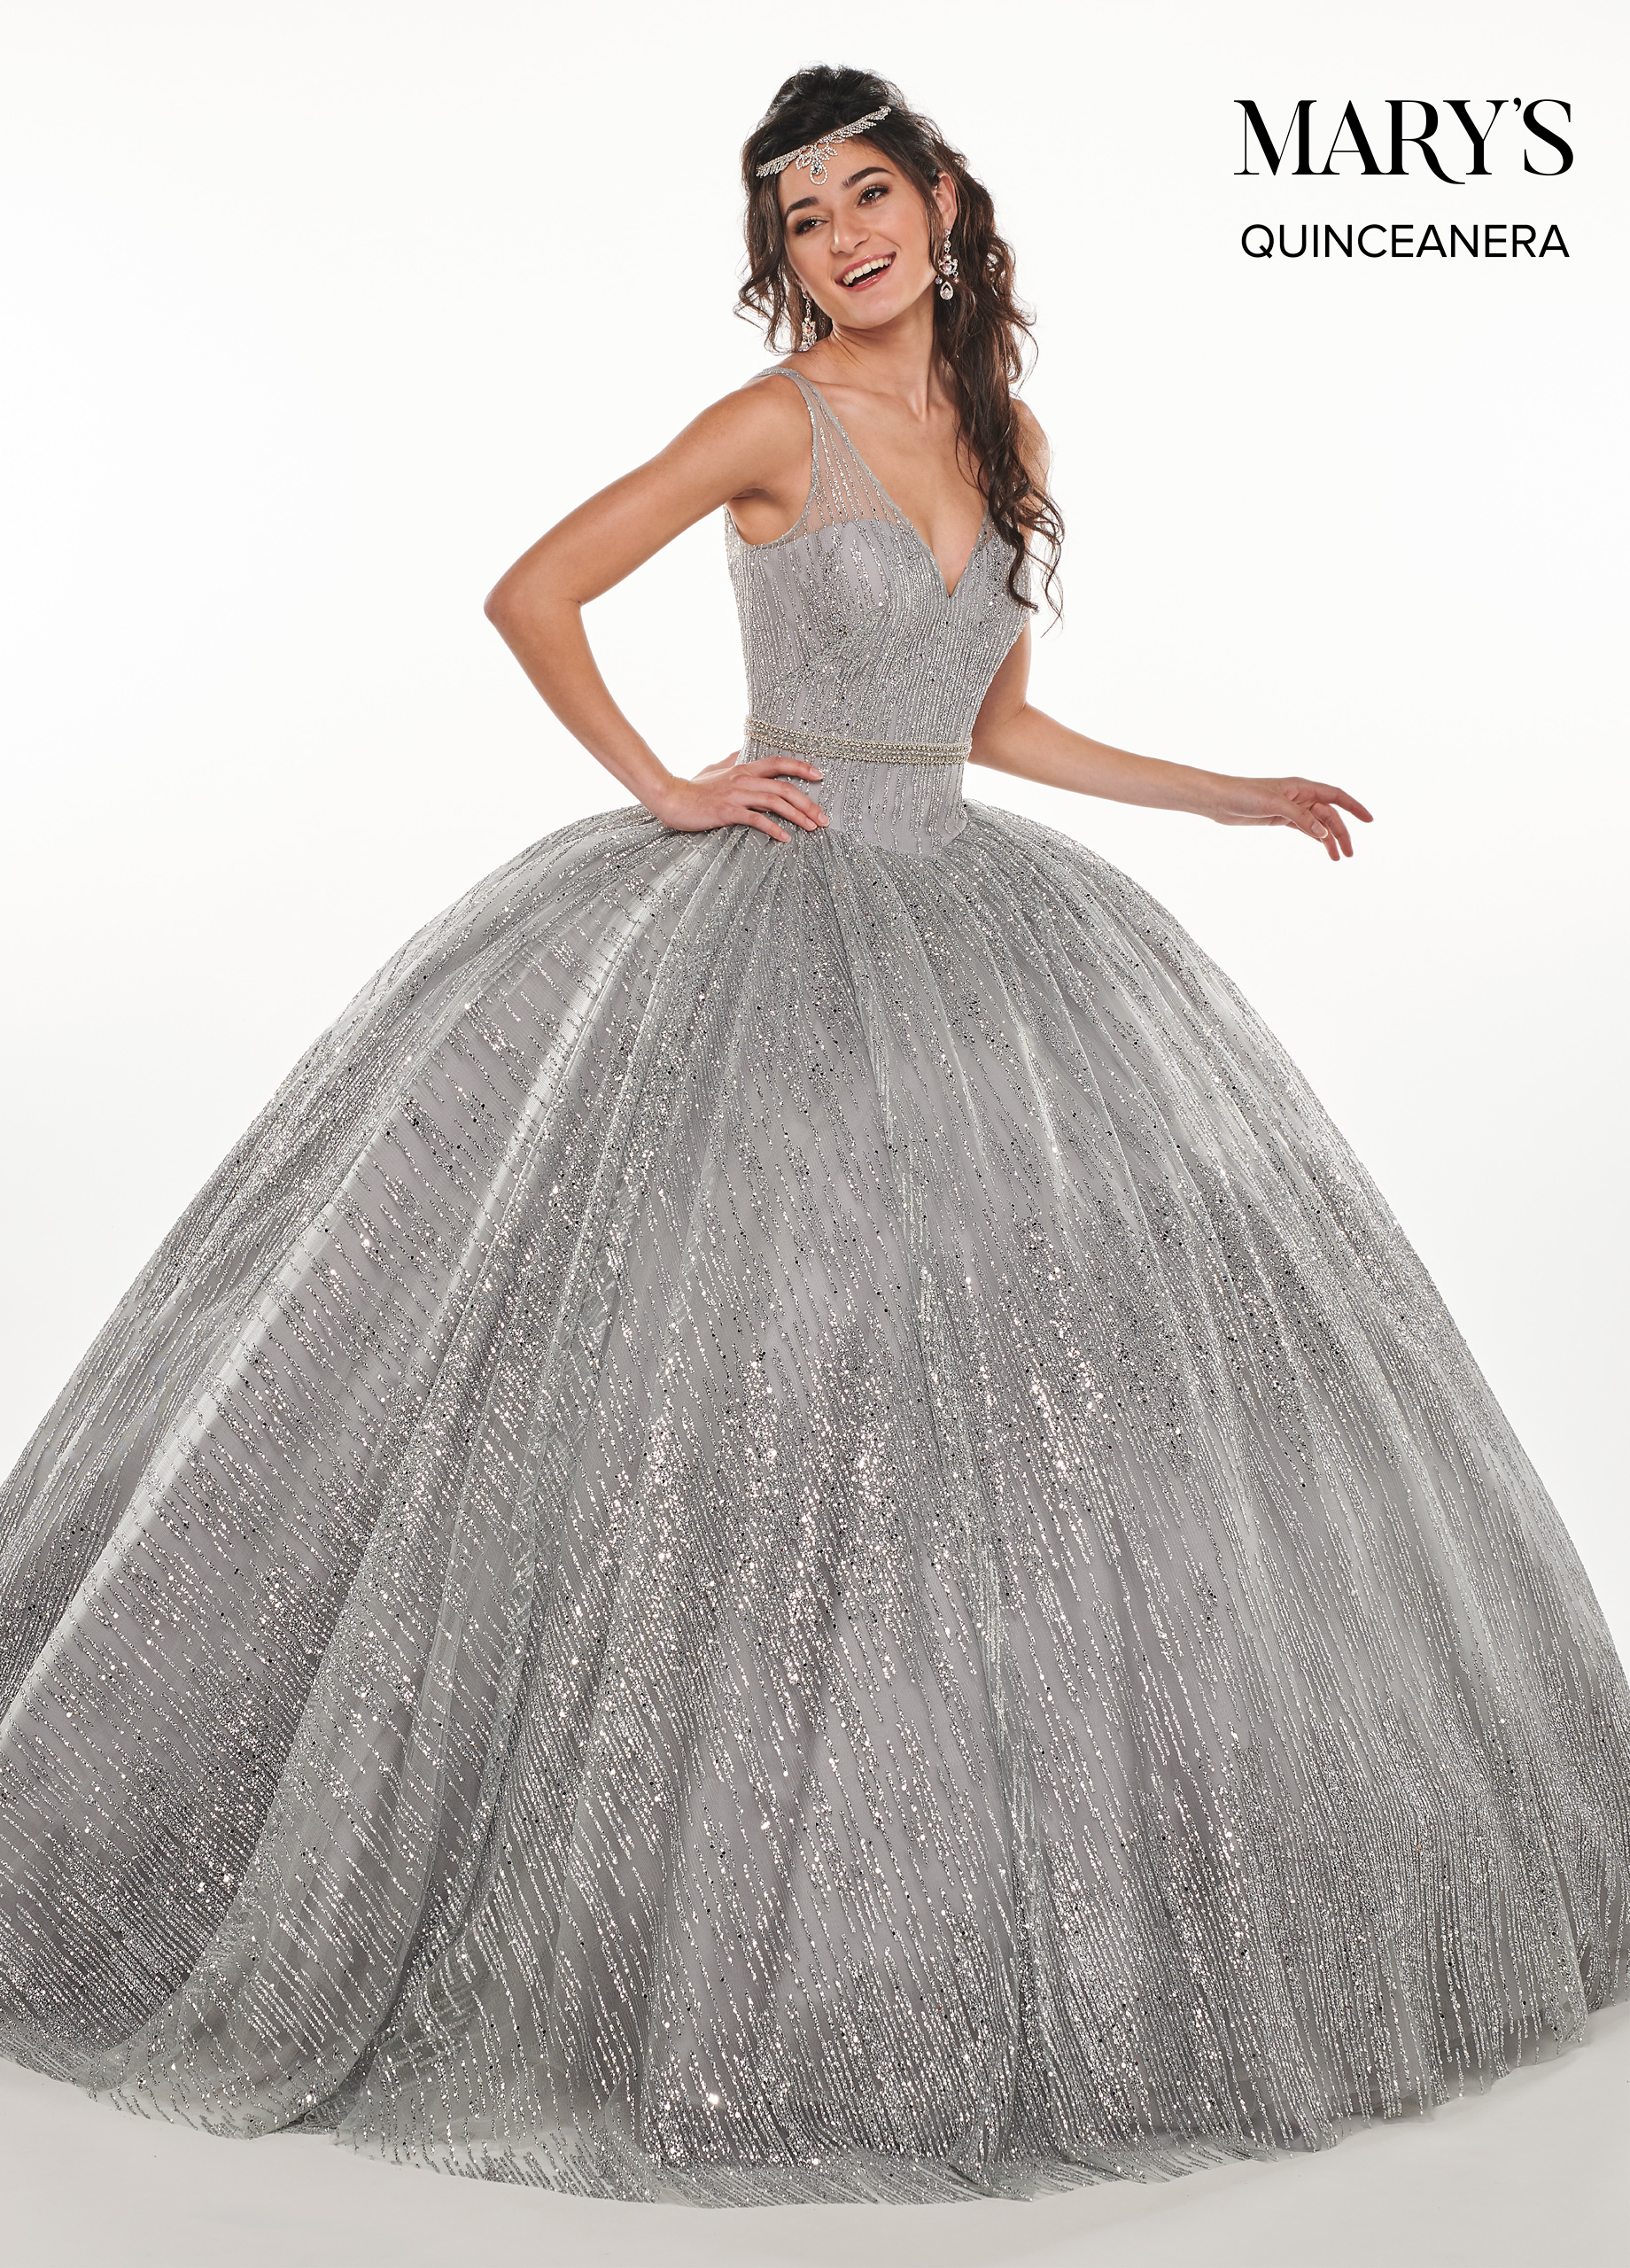 Marys Quinceanera Dresses | Mary's Quinceanera | Style - MQ2072